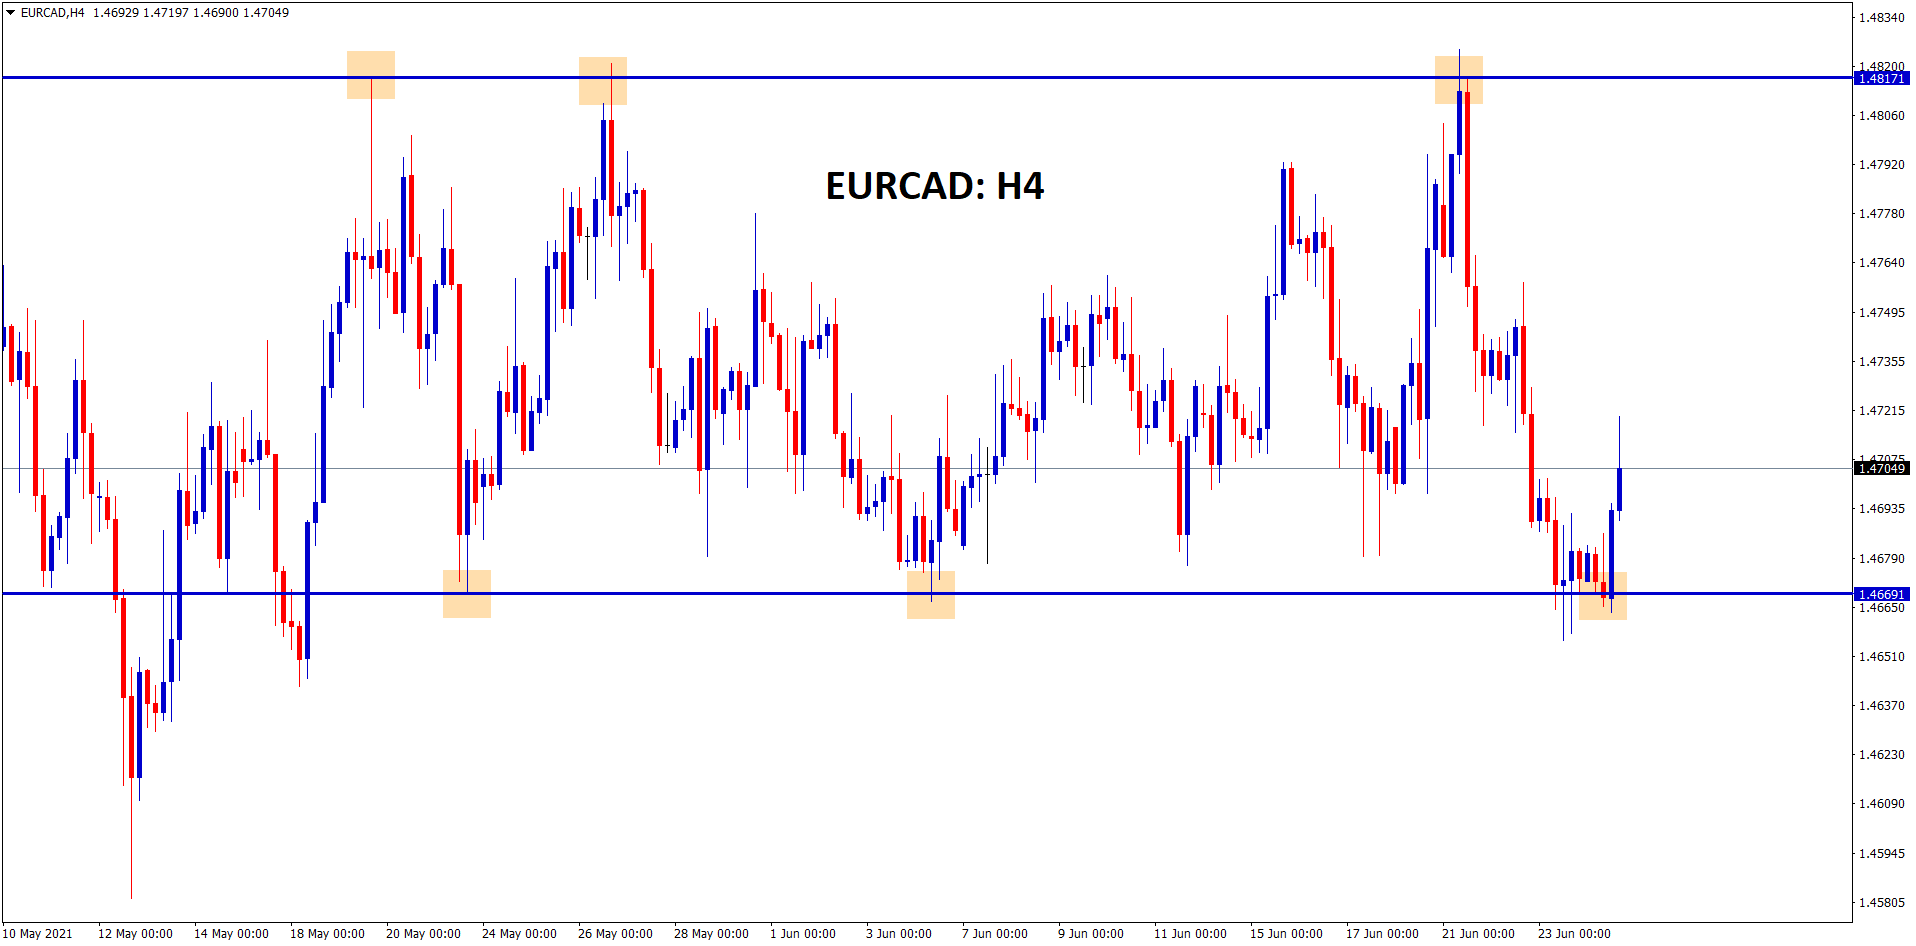 EURCAD is moving up and down between the resistance and support level range